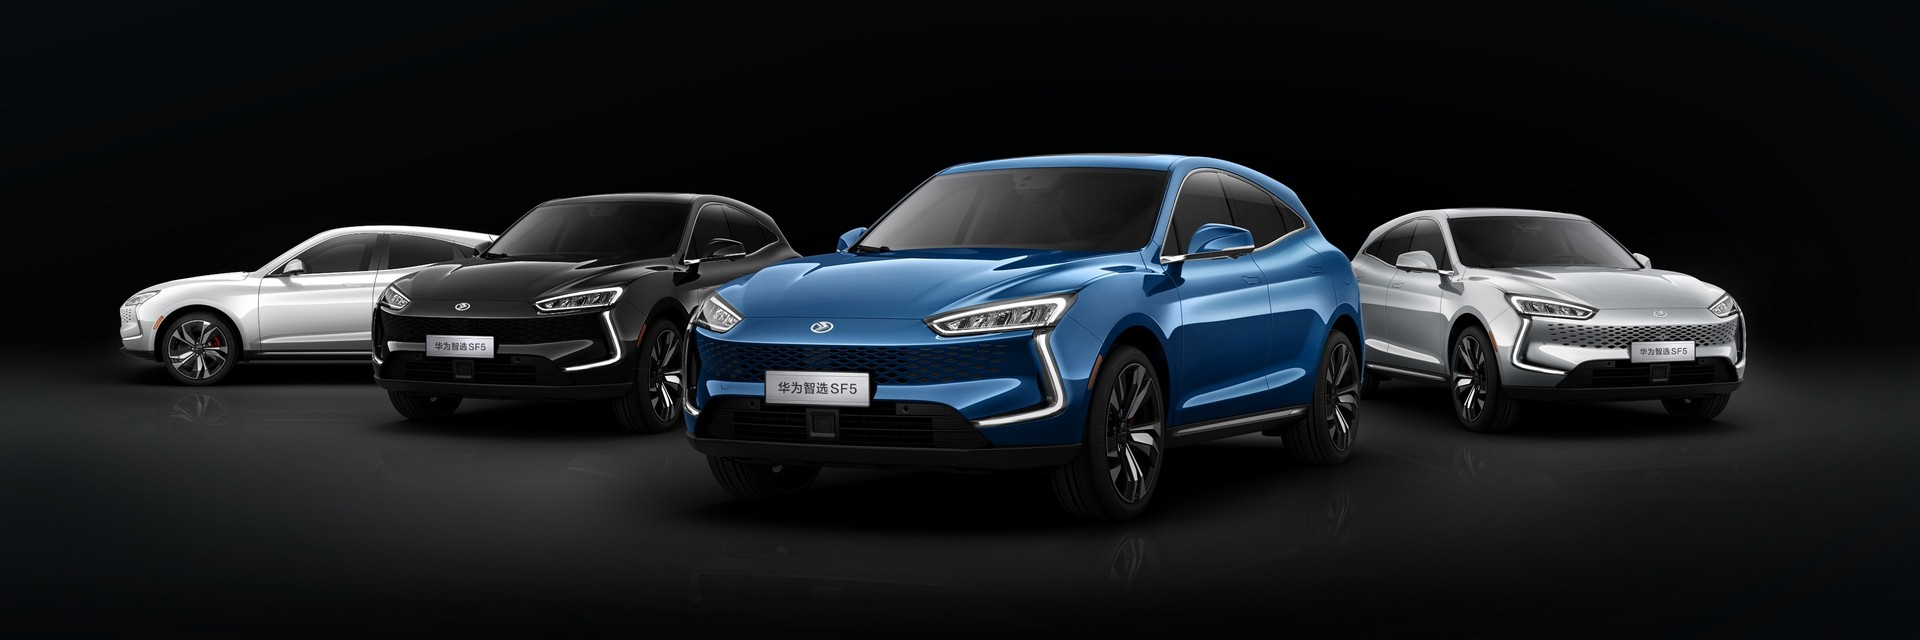 Most of us have come to associate the Huawei brand with smartphones and wearables, but the company has car manufacturing ambitions now, with the first model set to ship as early as next month.